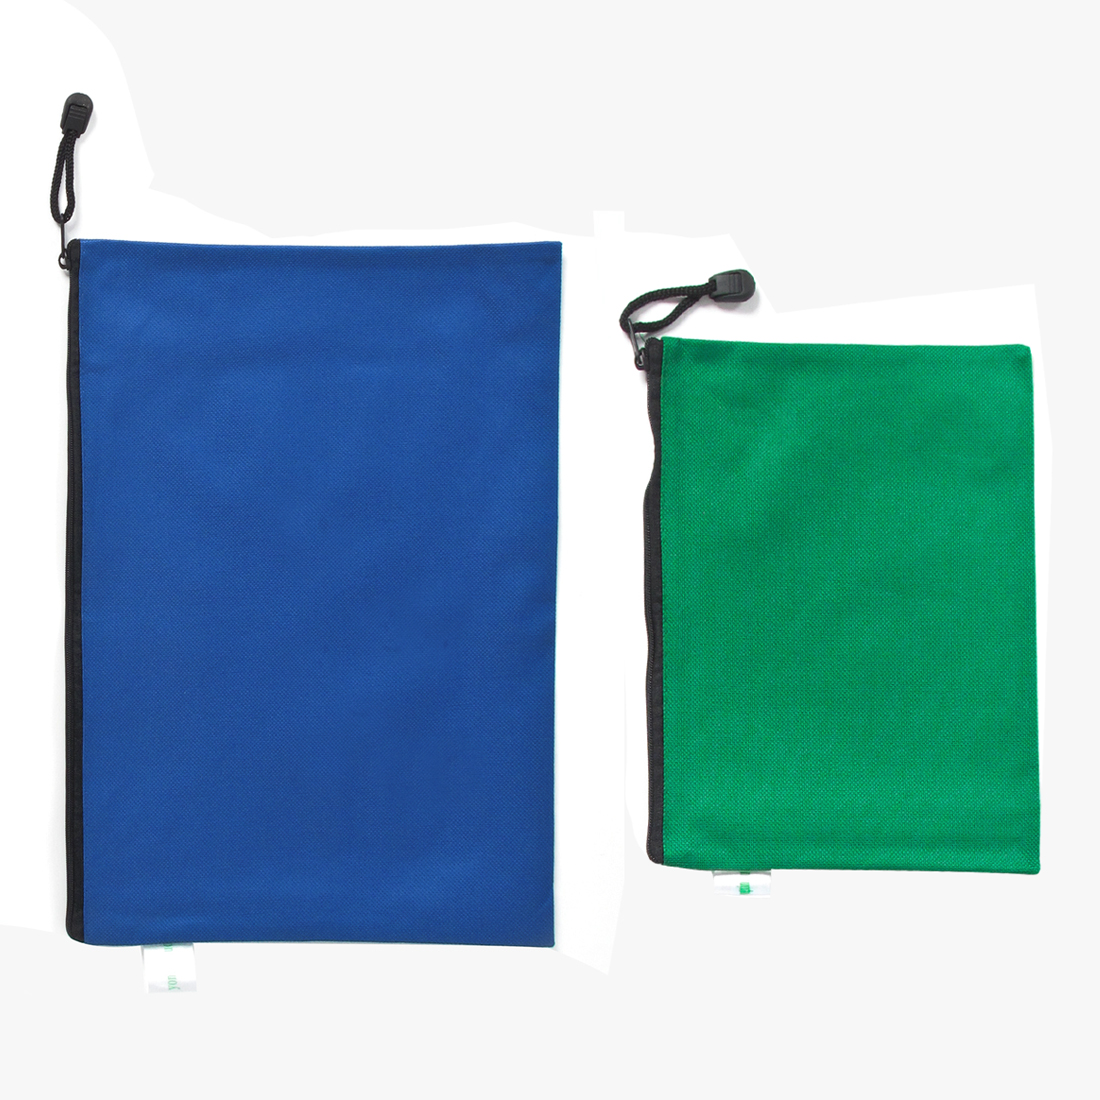 2 Pcs Stationery A4 A5 Paper File Document Zip Up Dark Blue Green Bag